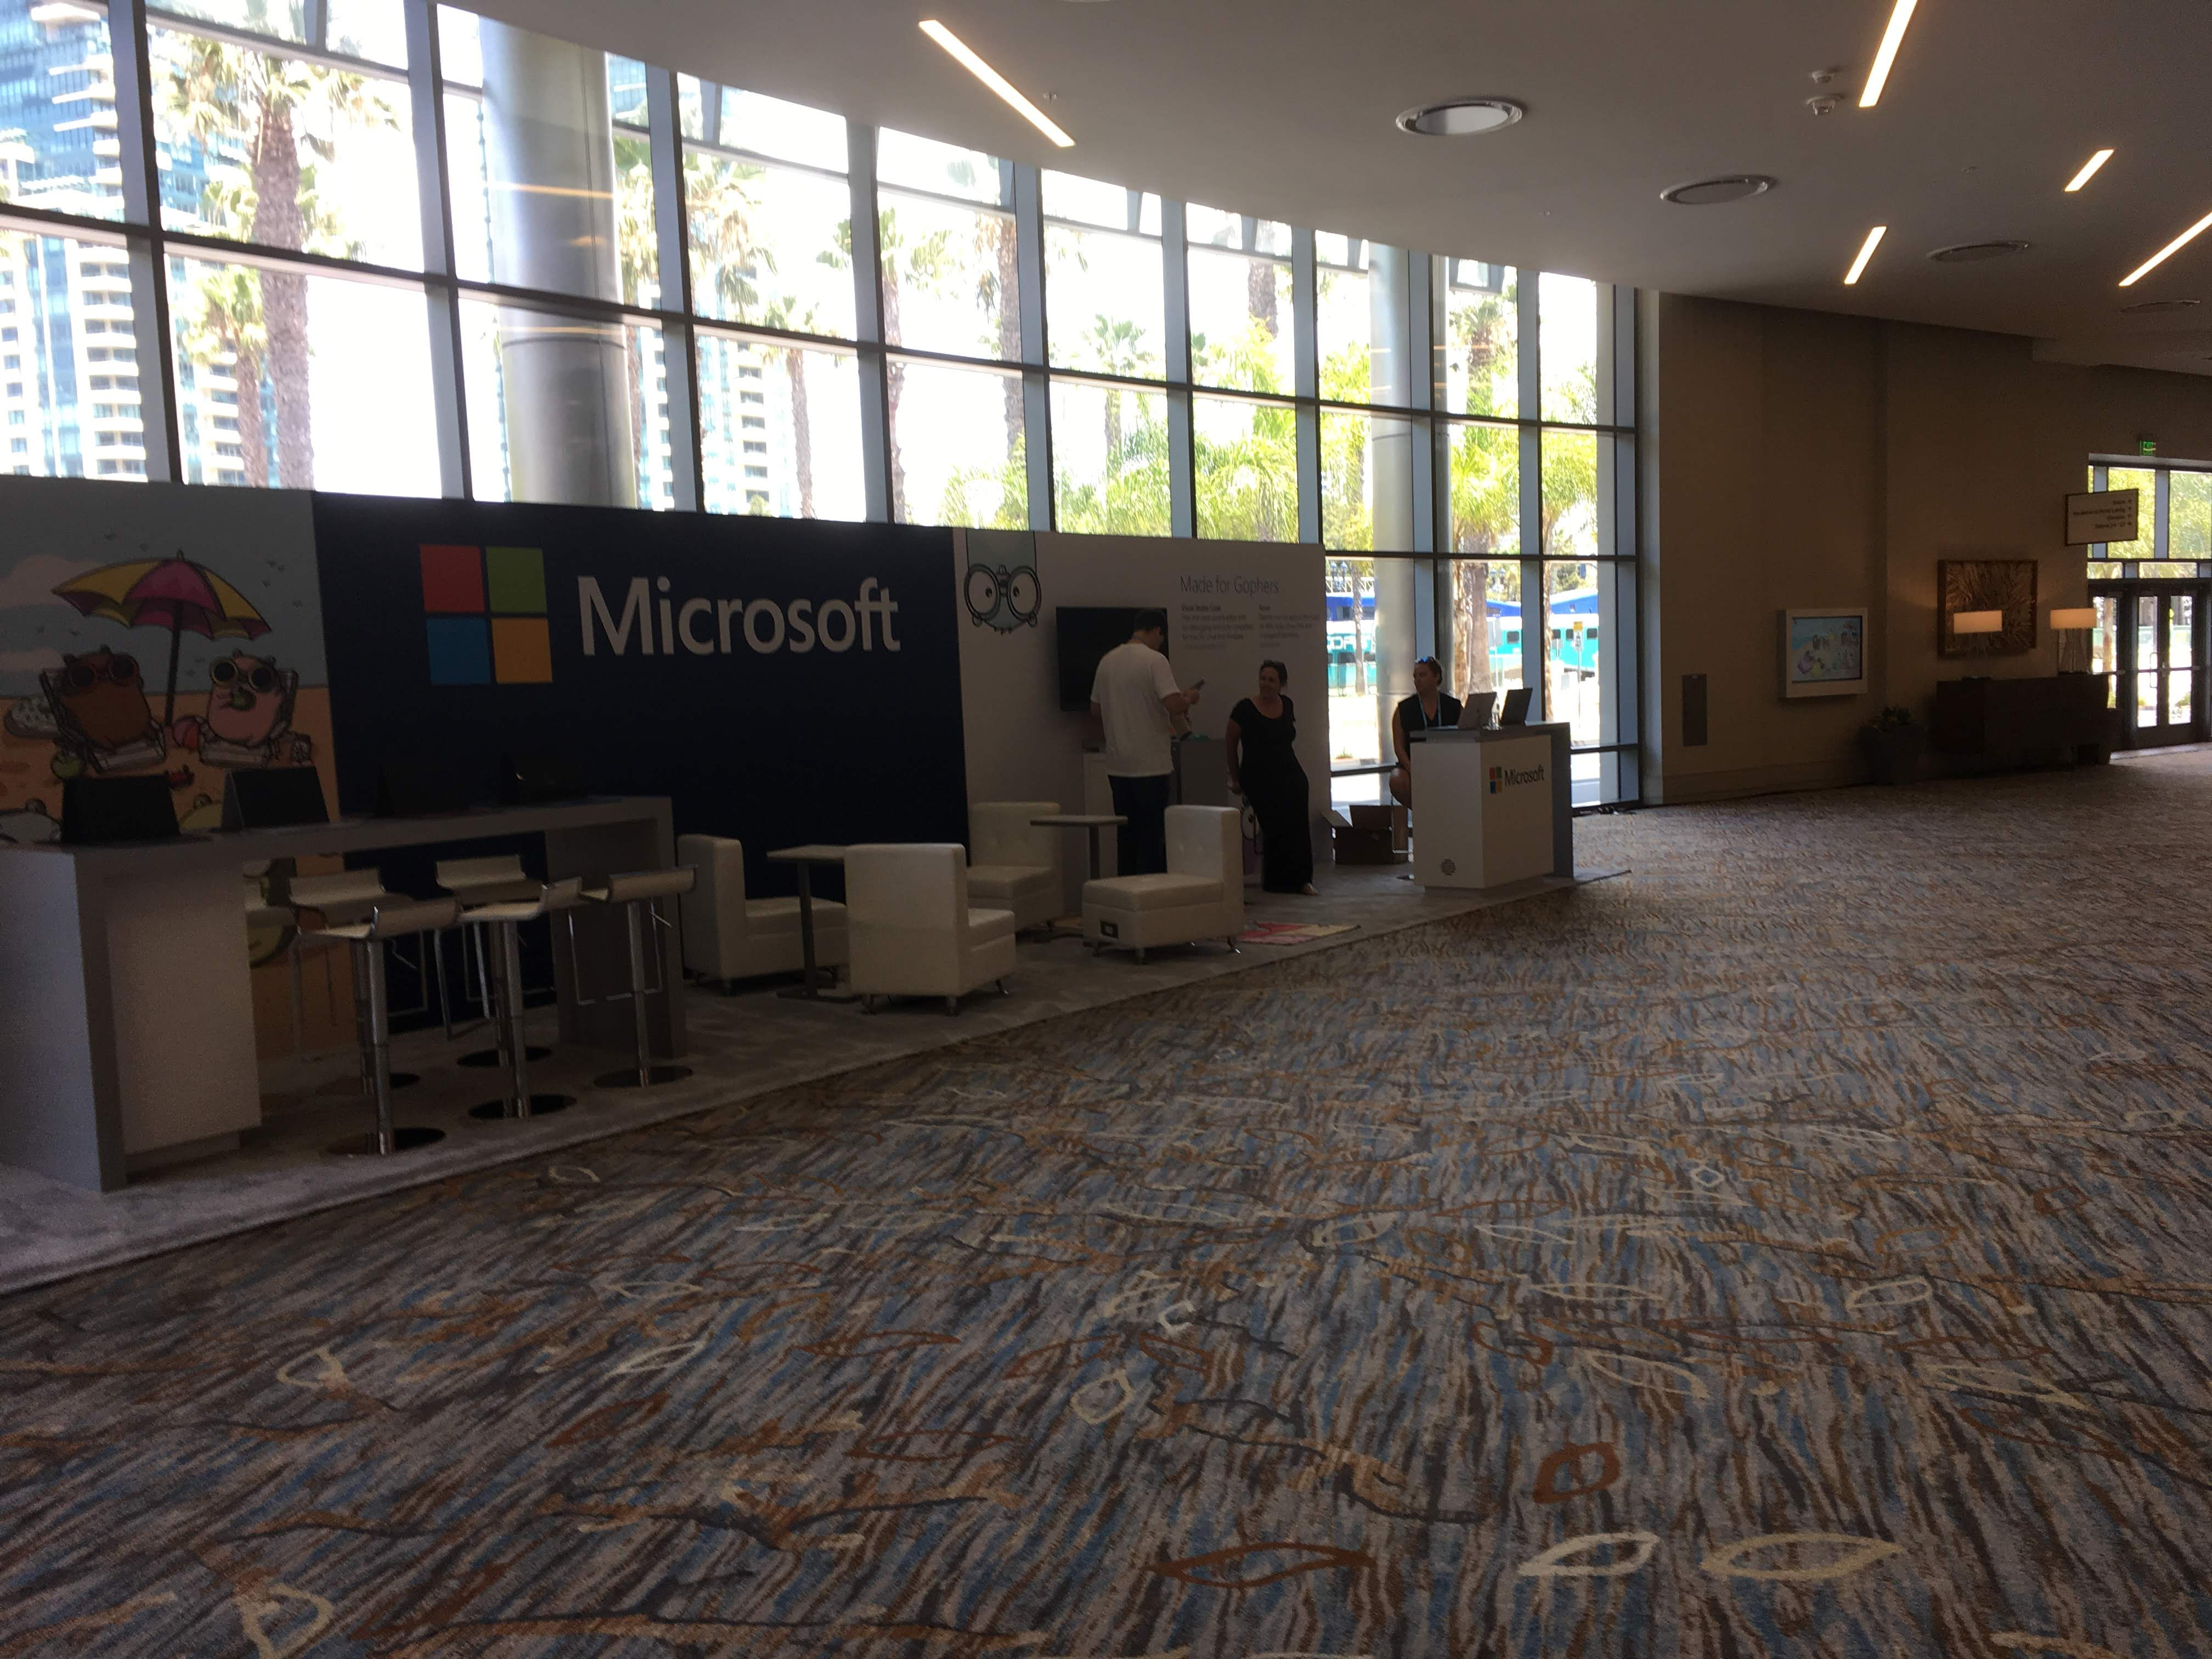 Microsoft Booth at GopherCon 2019